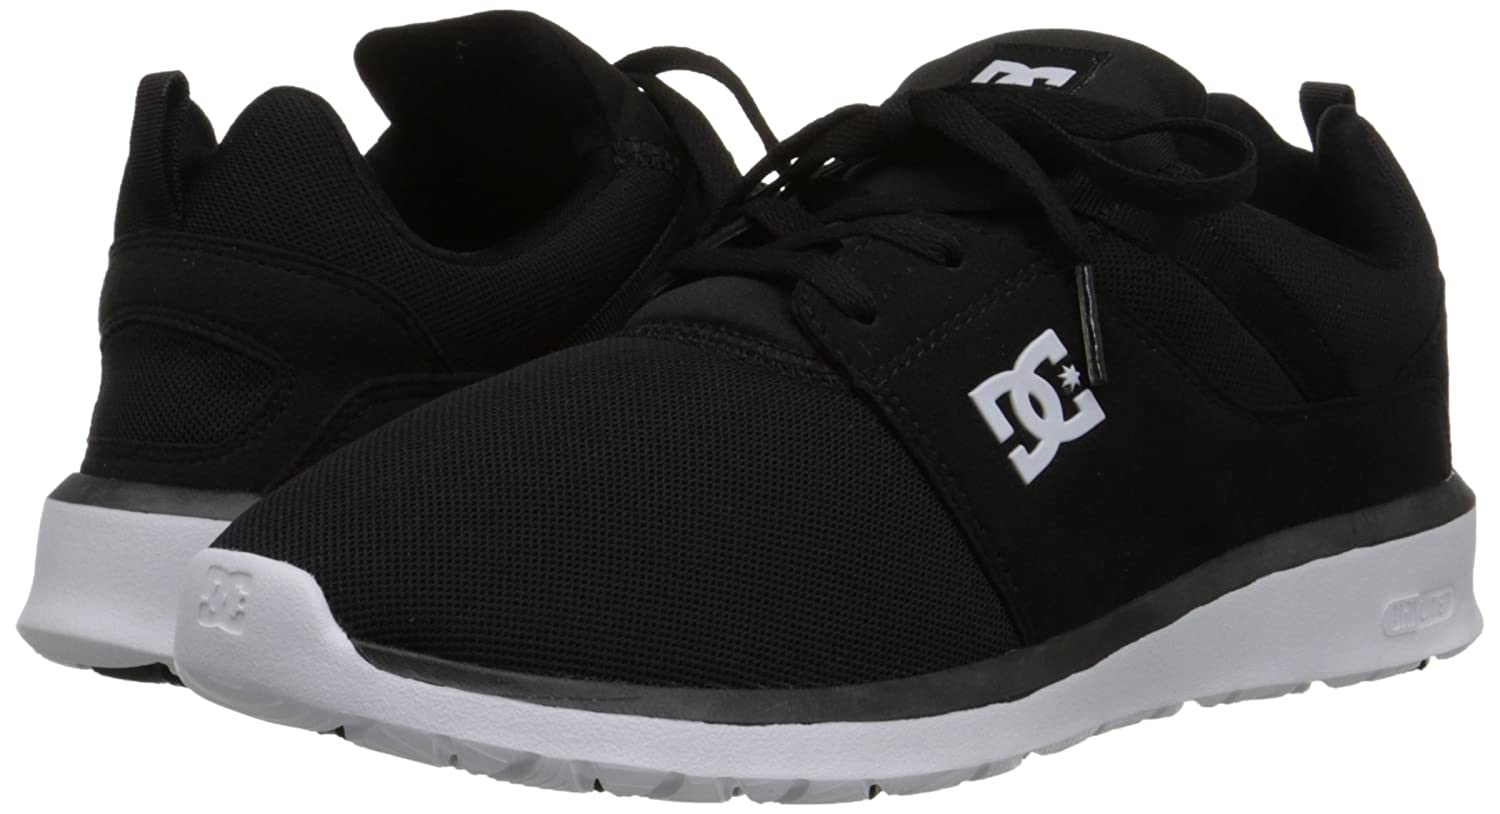 Dc Shoes Heathrow De Los Hombres l5OcL5A3